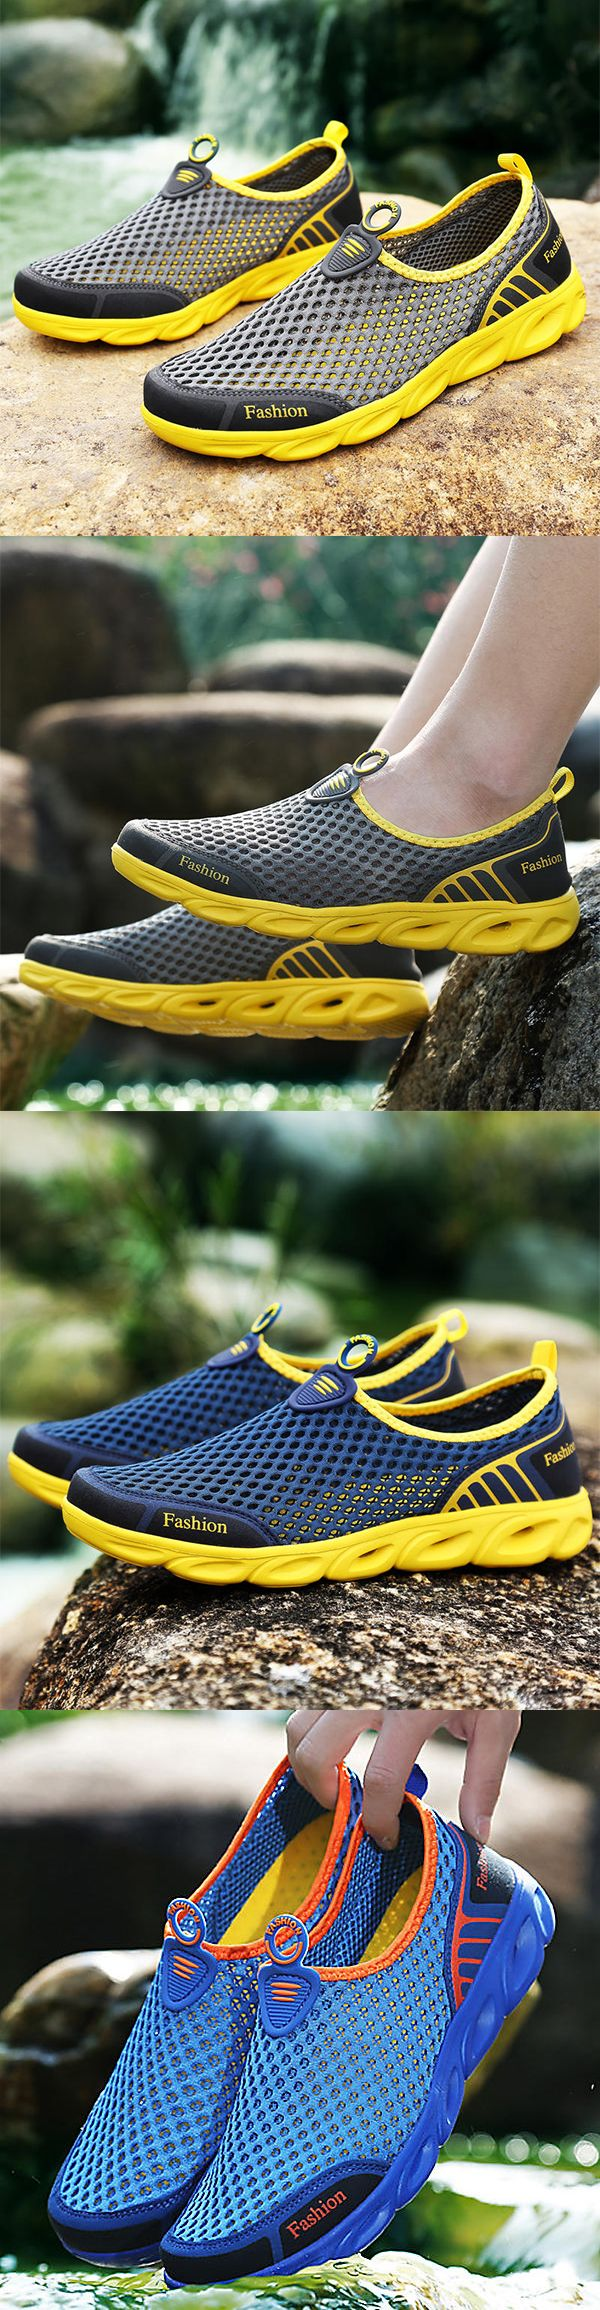 Comfy Breathable Mesh Sports Shoes images